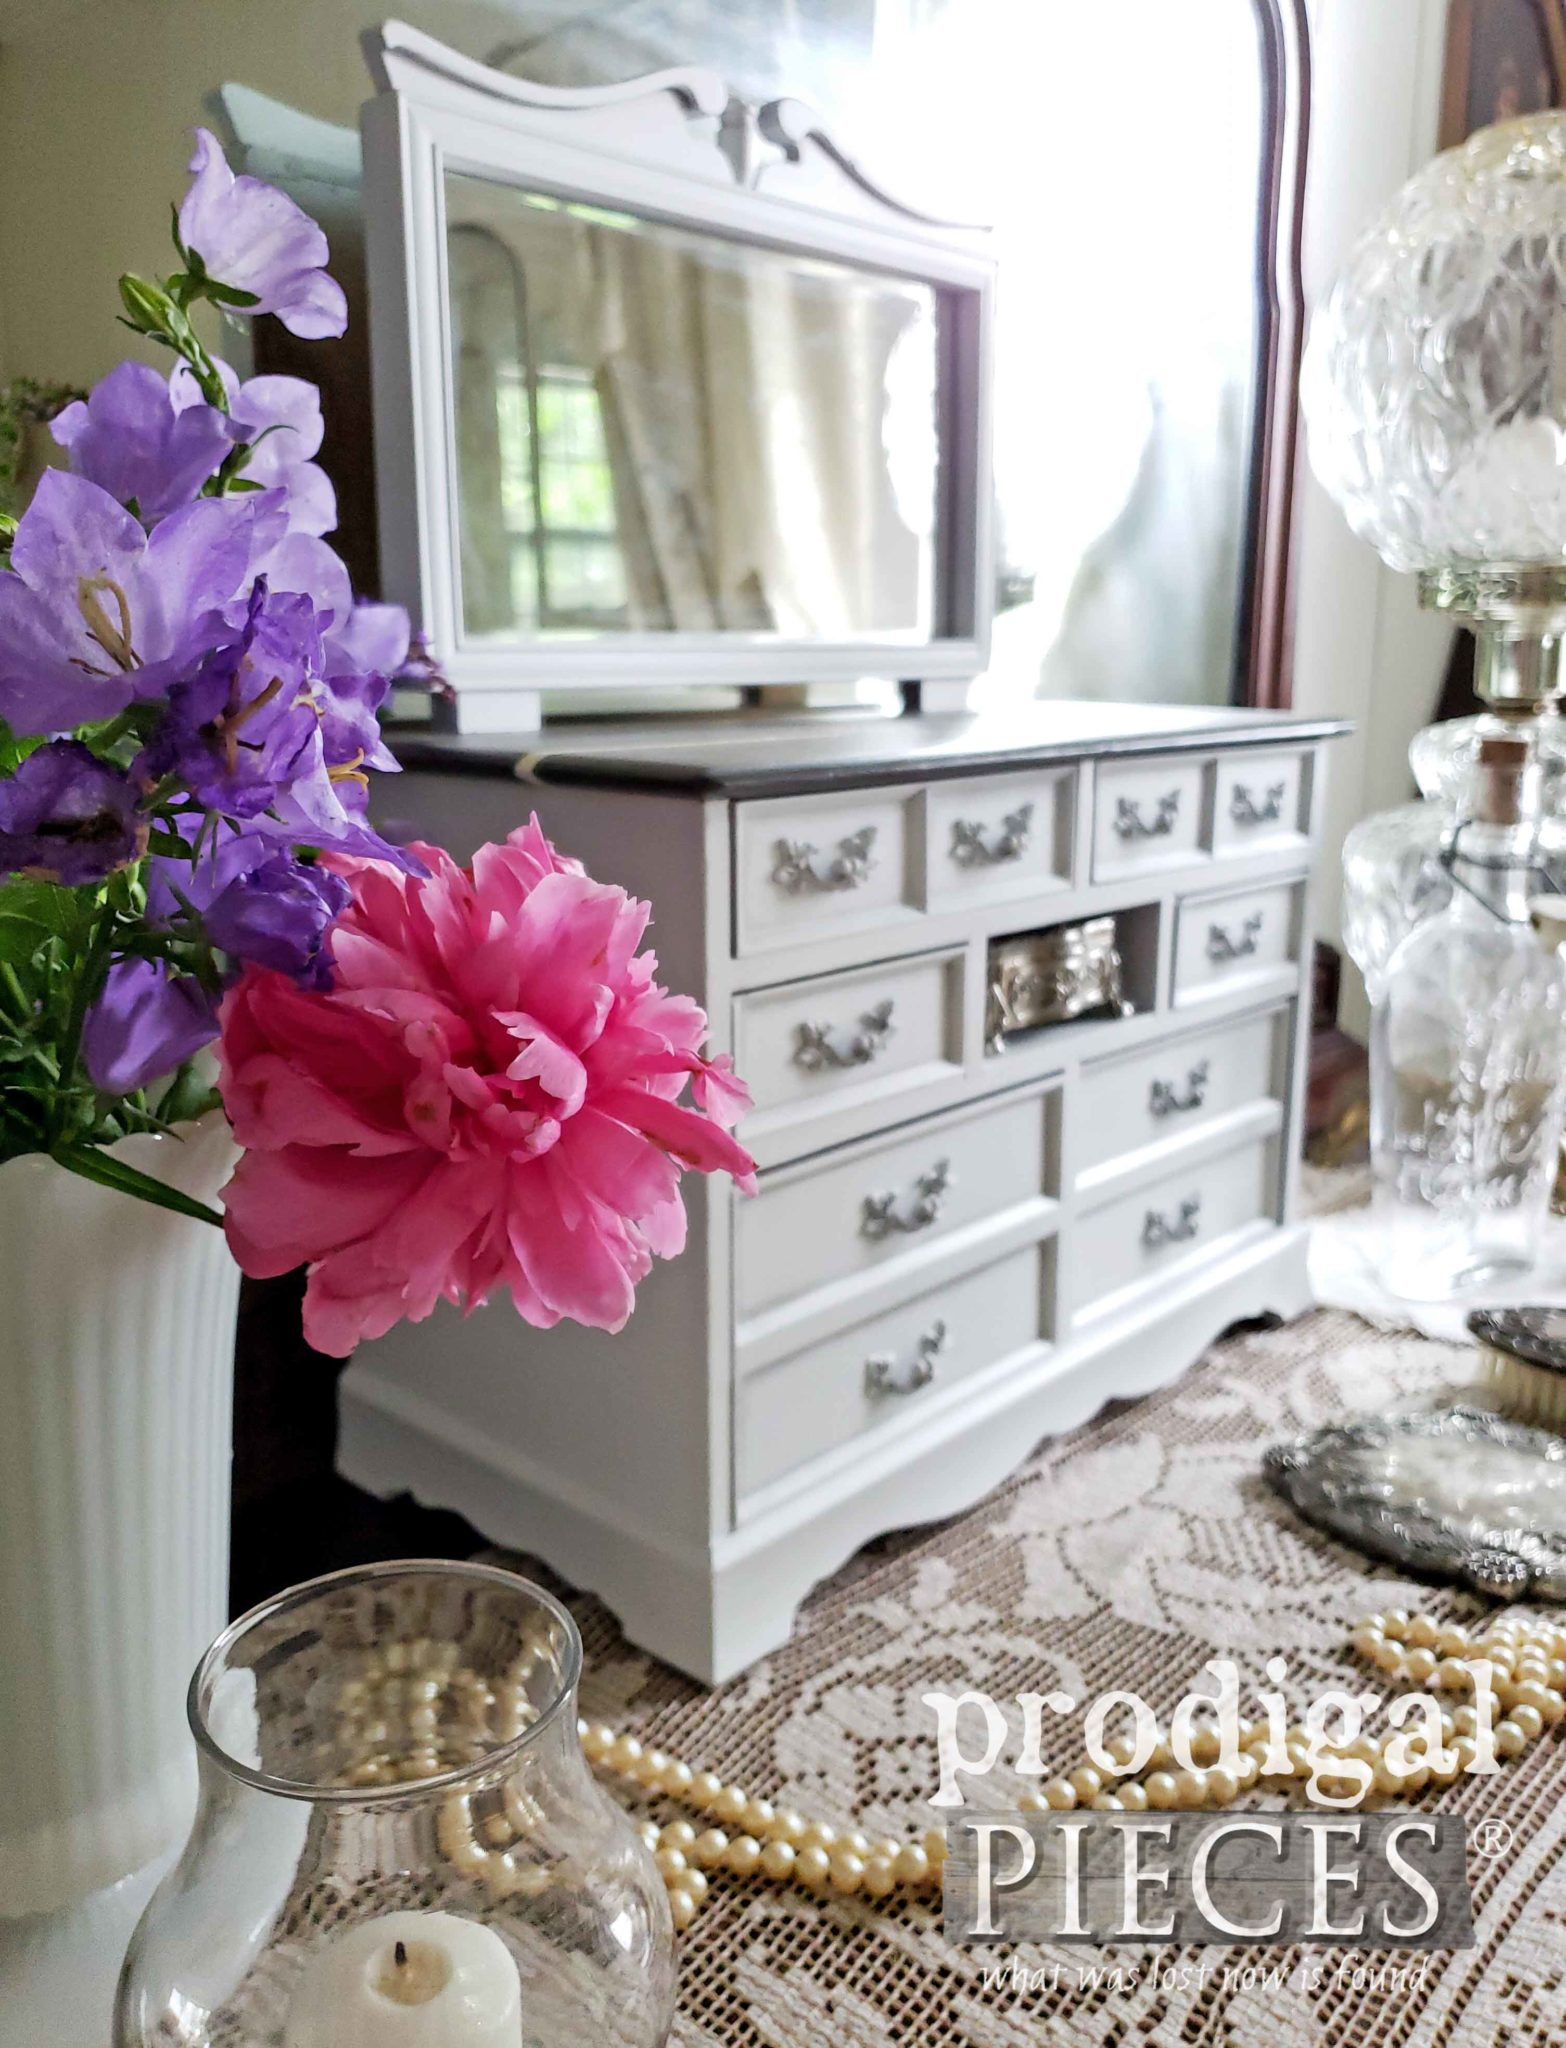 Pink Peony Dresser Vignette with Mini Dresser Musical Jewelry Box by Larissa of Prodigal Pieces | prodigalpieces.com